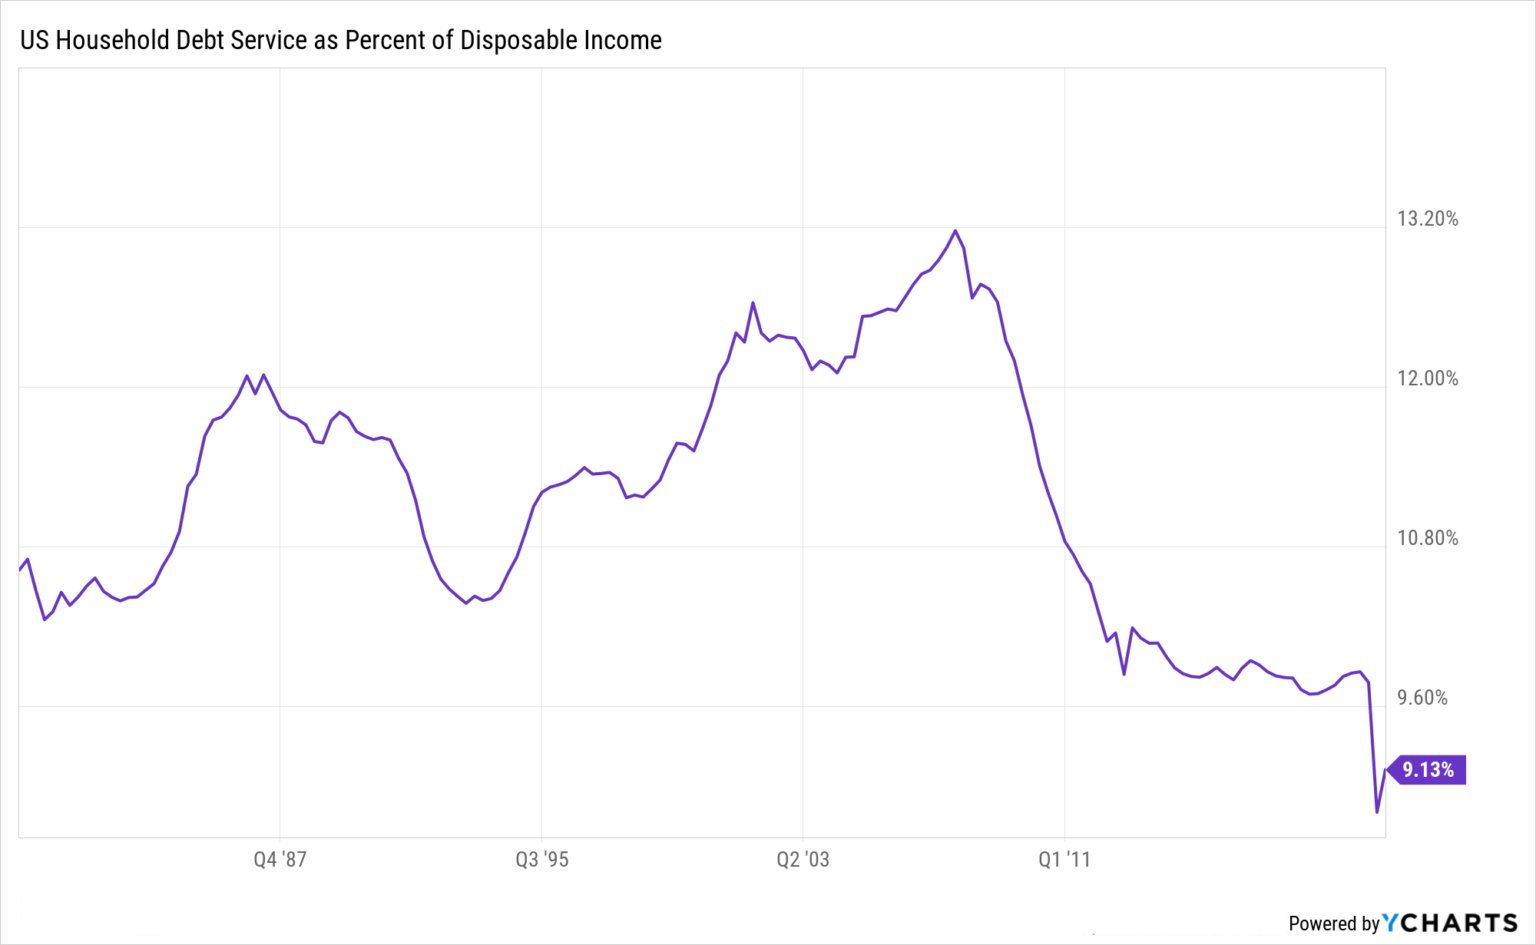 US household debt service as a percent of disposable income historical chart